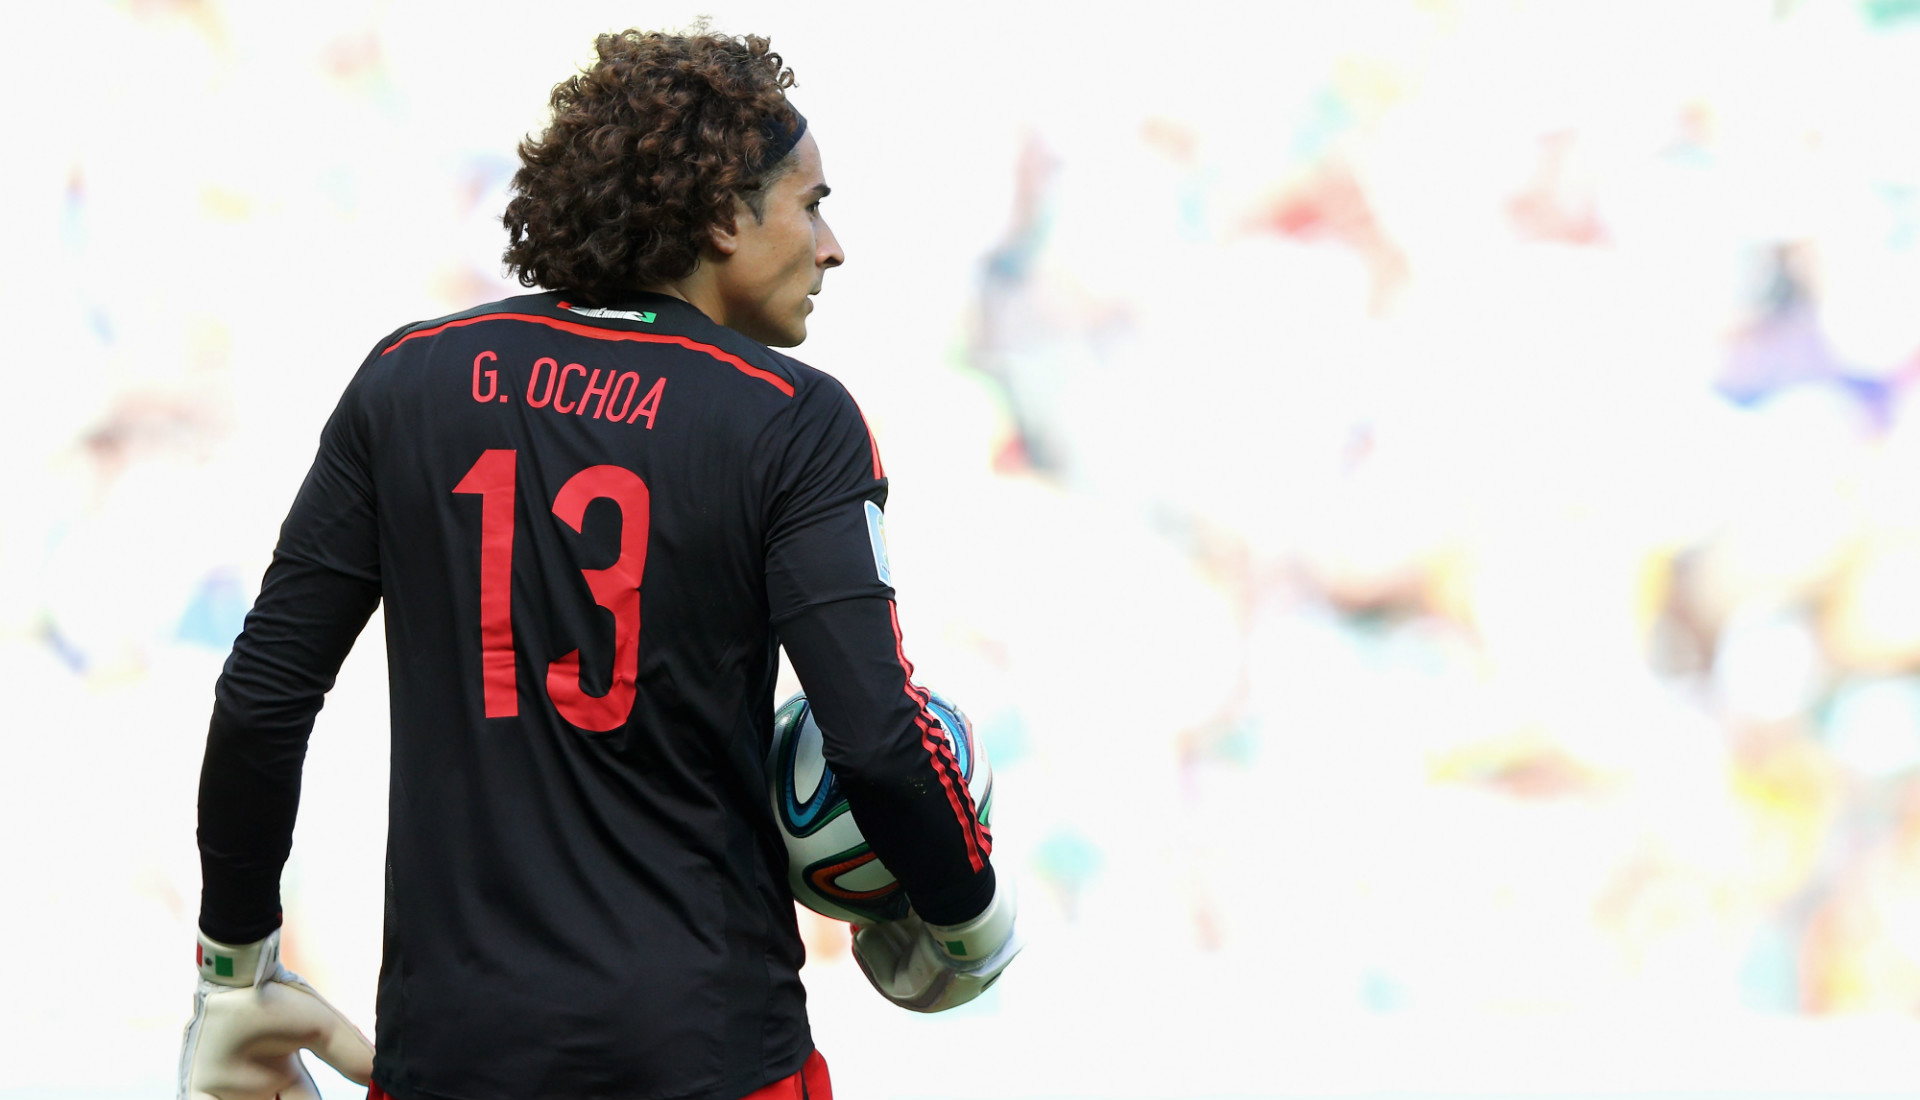 powerade wallpaper guillermo ochoa - photo #28